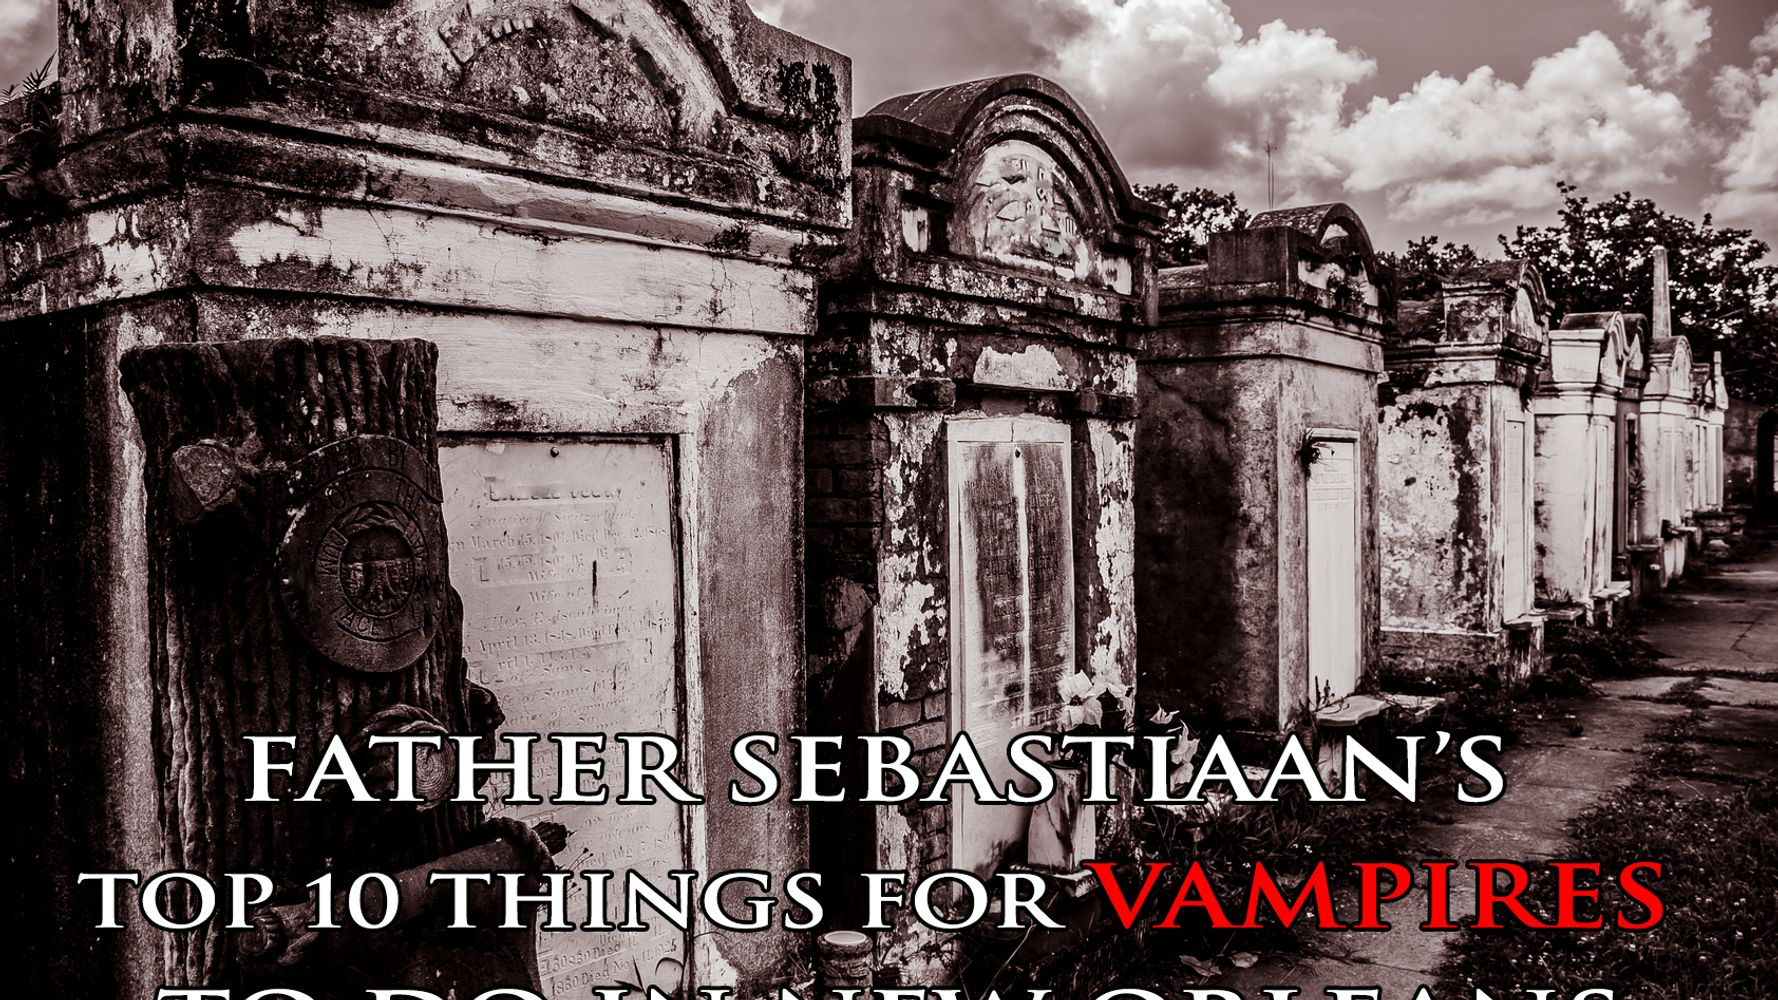 Father Sebastiaan's Vampire Guide: New Orleans | HuffPost